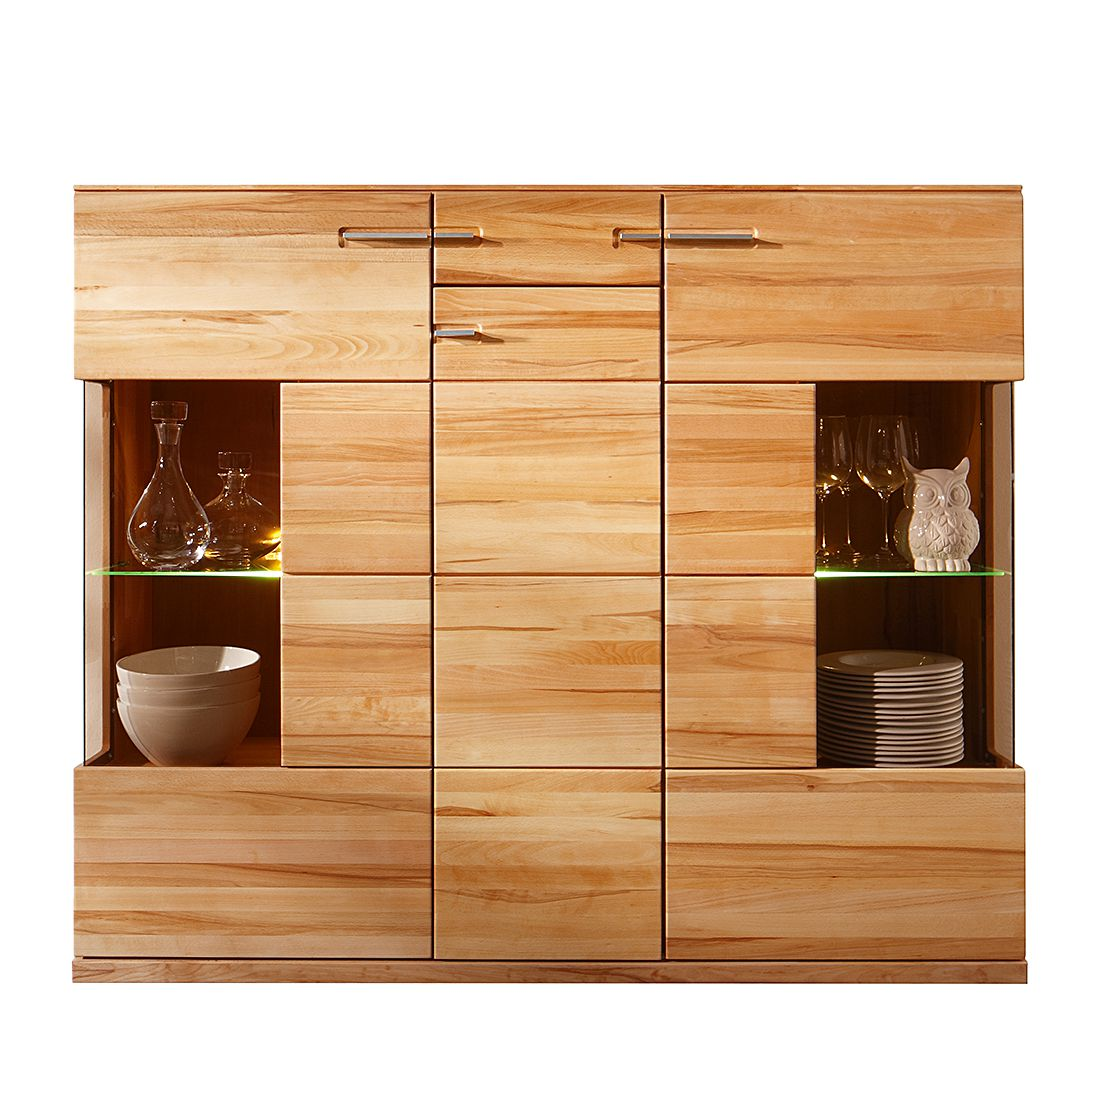 highboard oregon kernbuche massiv ge lt gewachst highboard ohne beleuchtung schrank. Black Bedroom Furniture Sets. Home Design Ideas